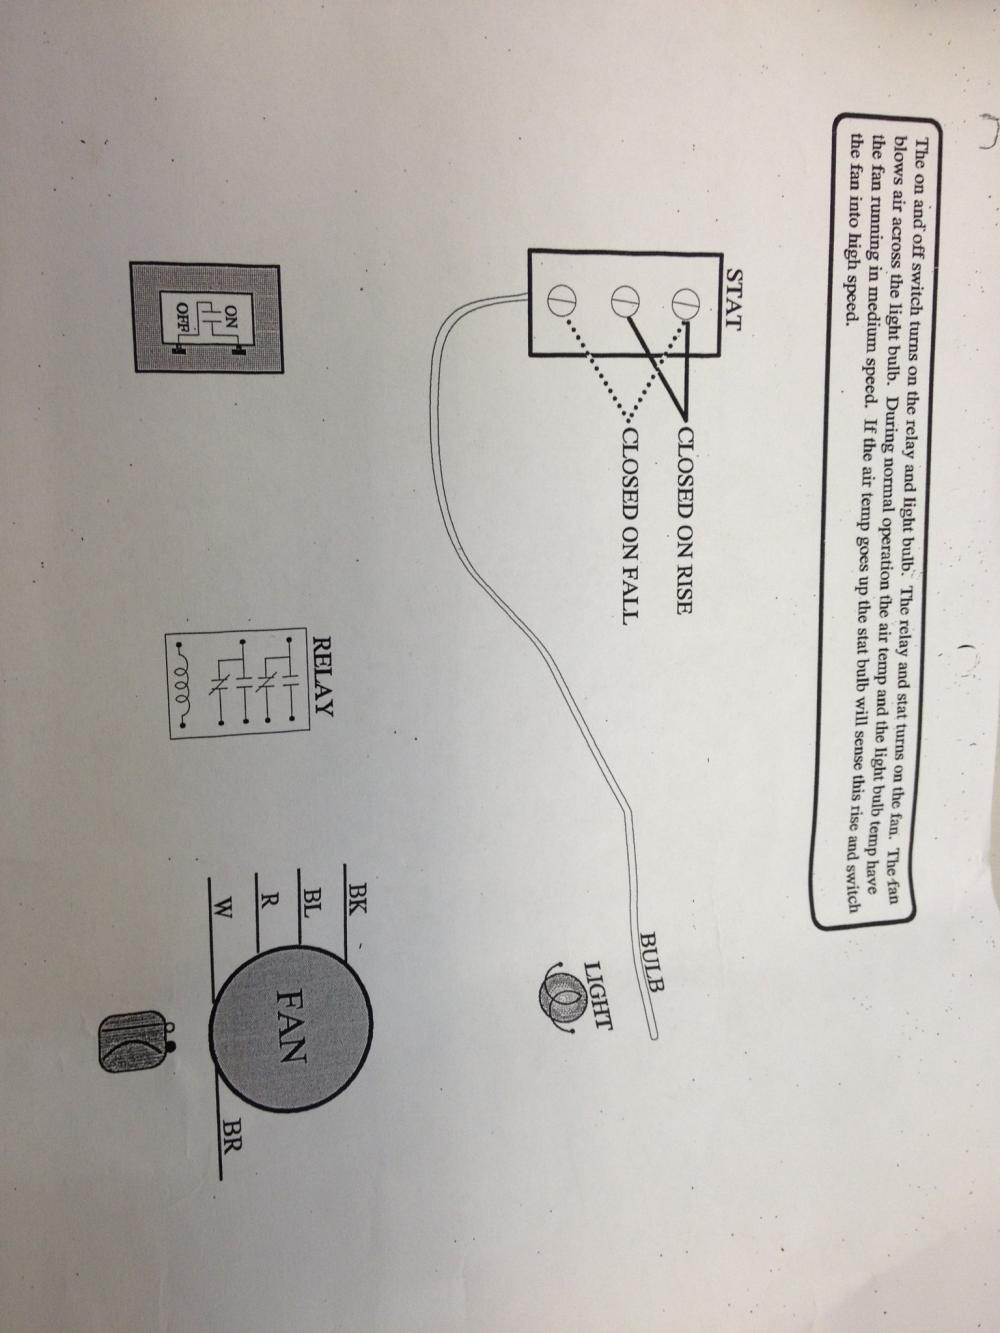 Please help with pictorial diagram homework